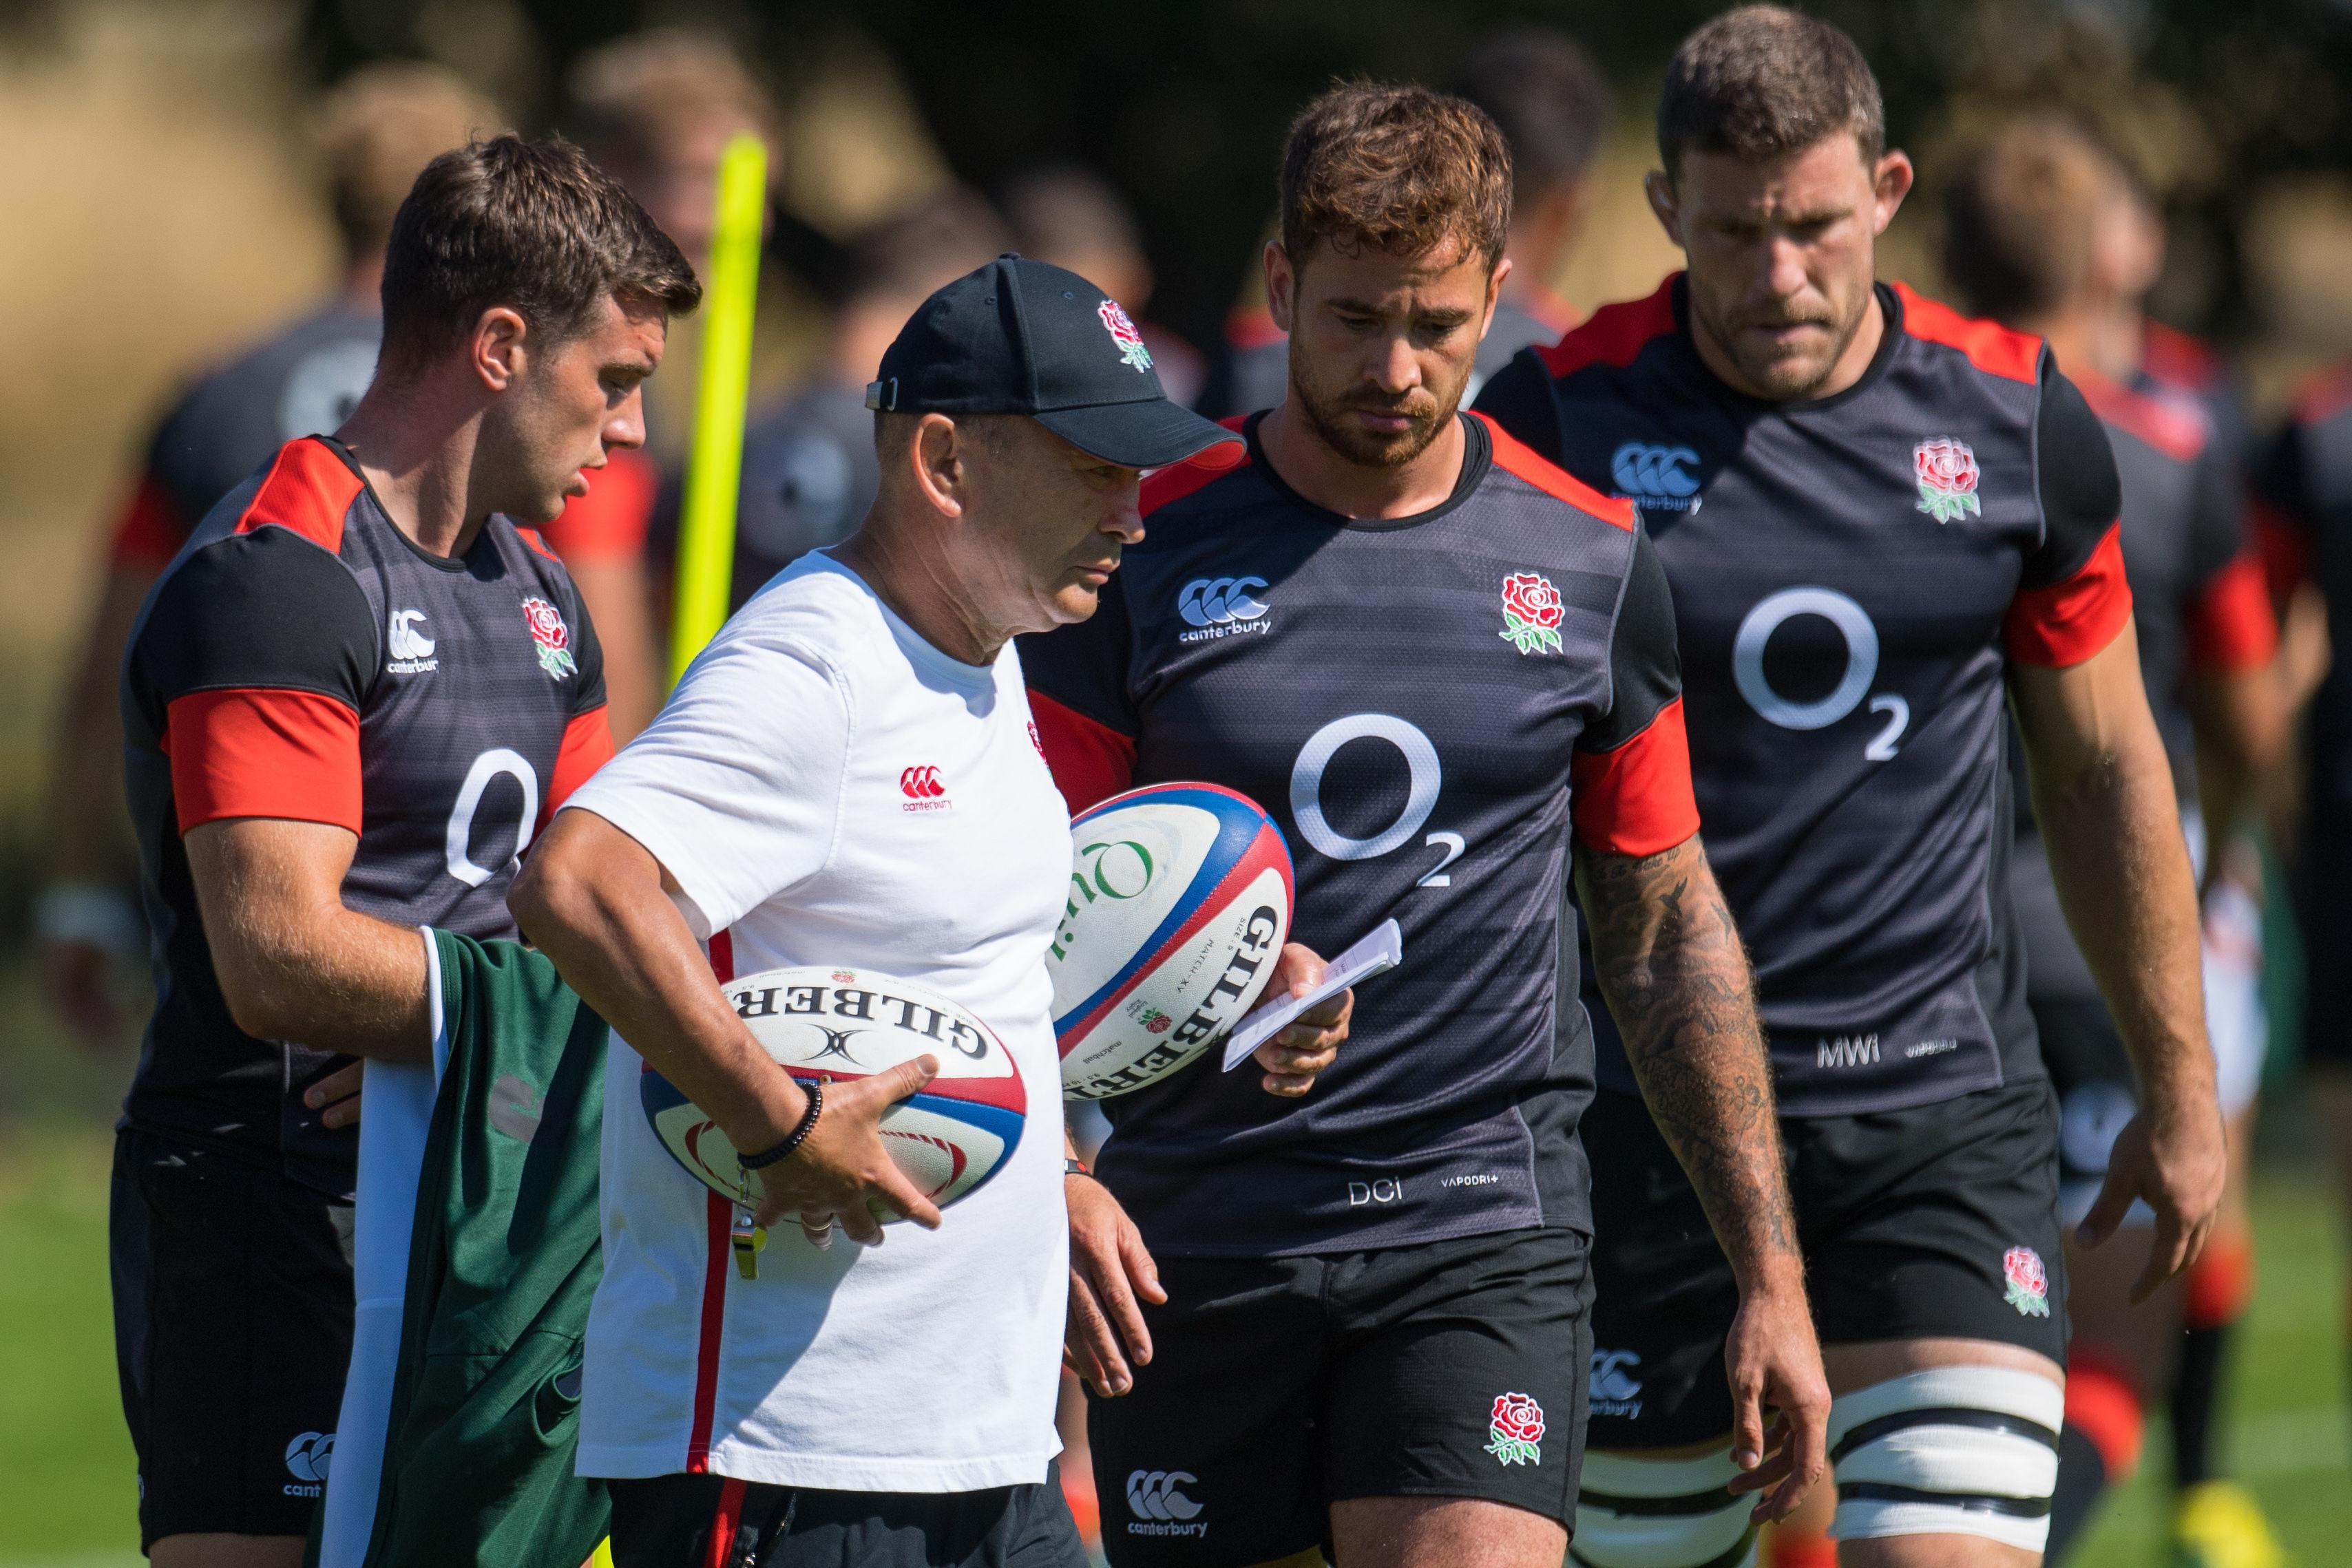 Eddie Jones still has Danny Cipriani under central contract with England - even though the star was snubbed during the Autumn internationals